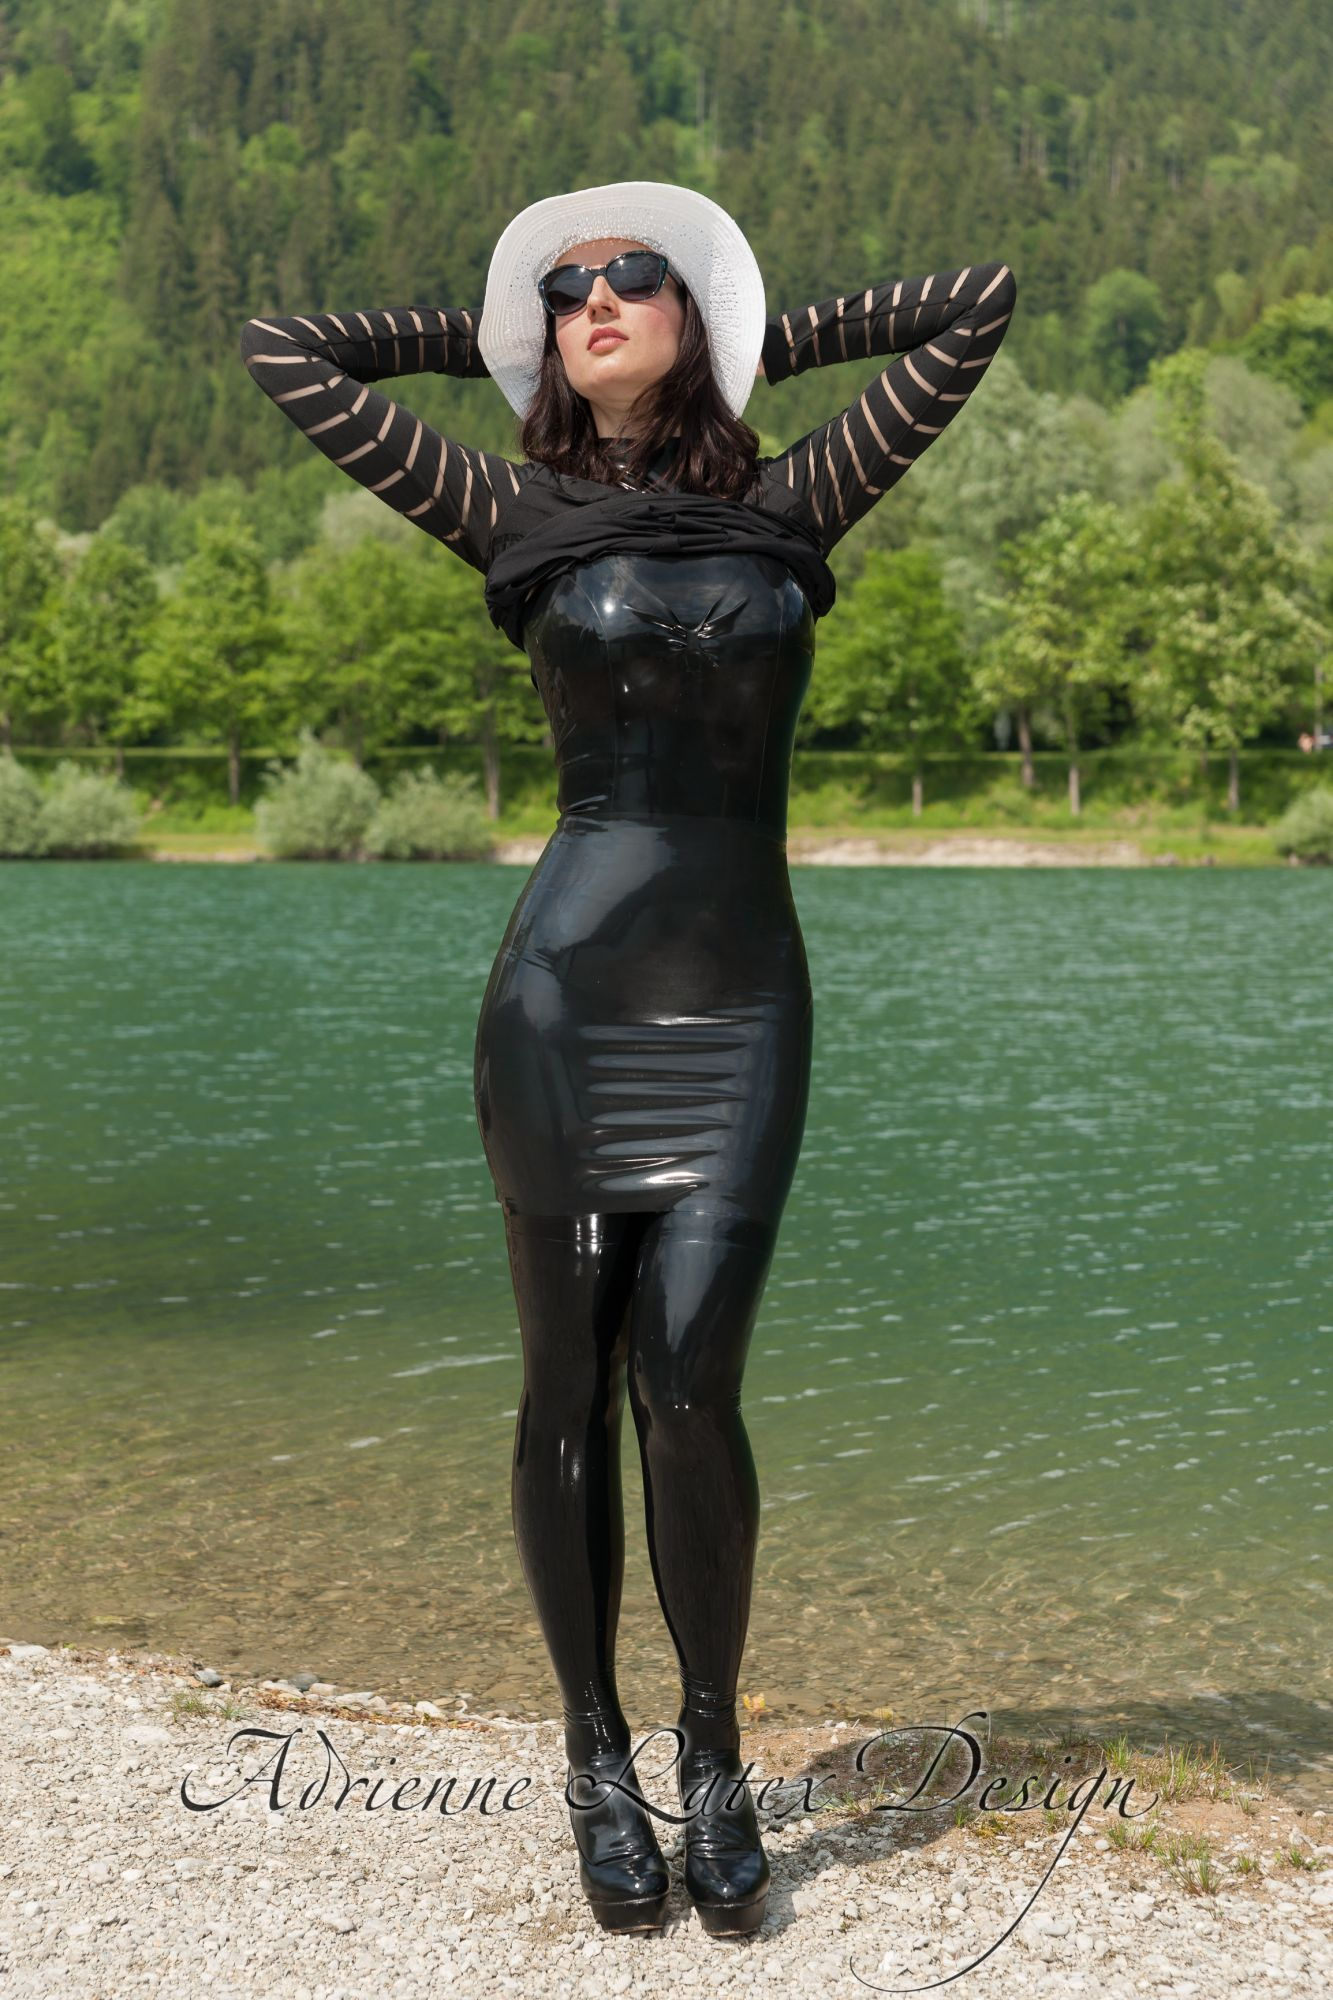 Gal 2 Adrienne Latex Design Custom Made Fetish Fashion